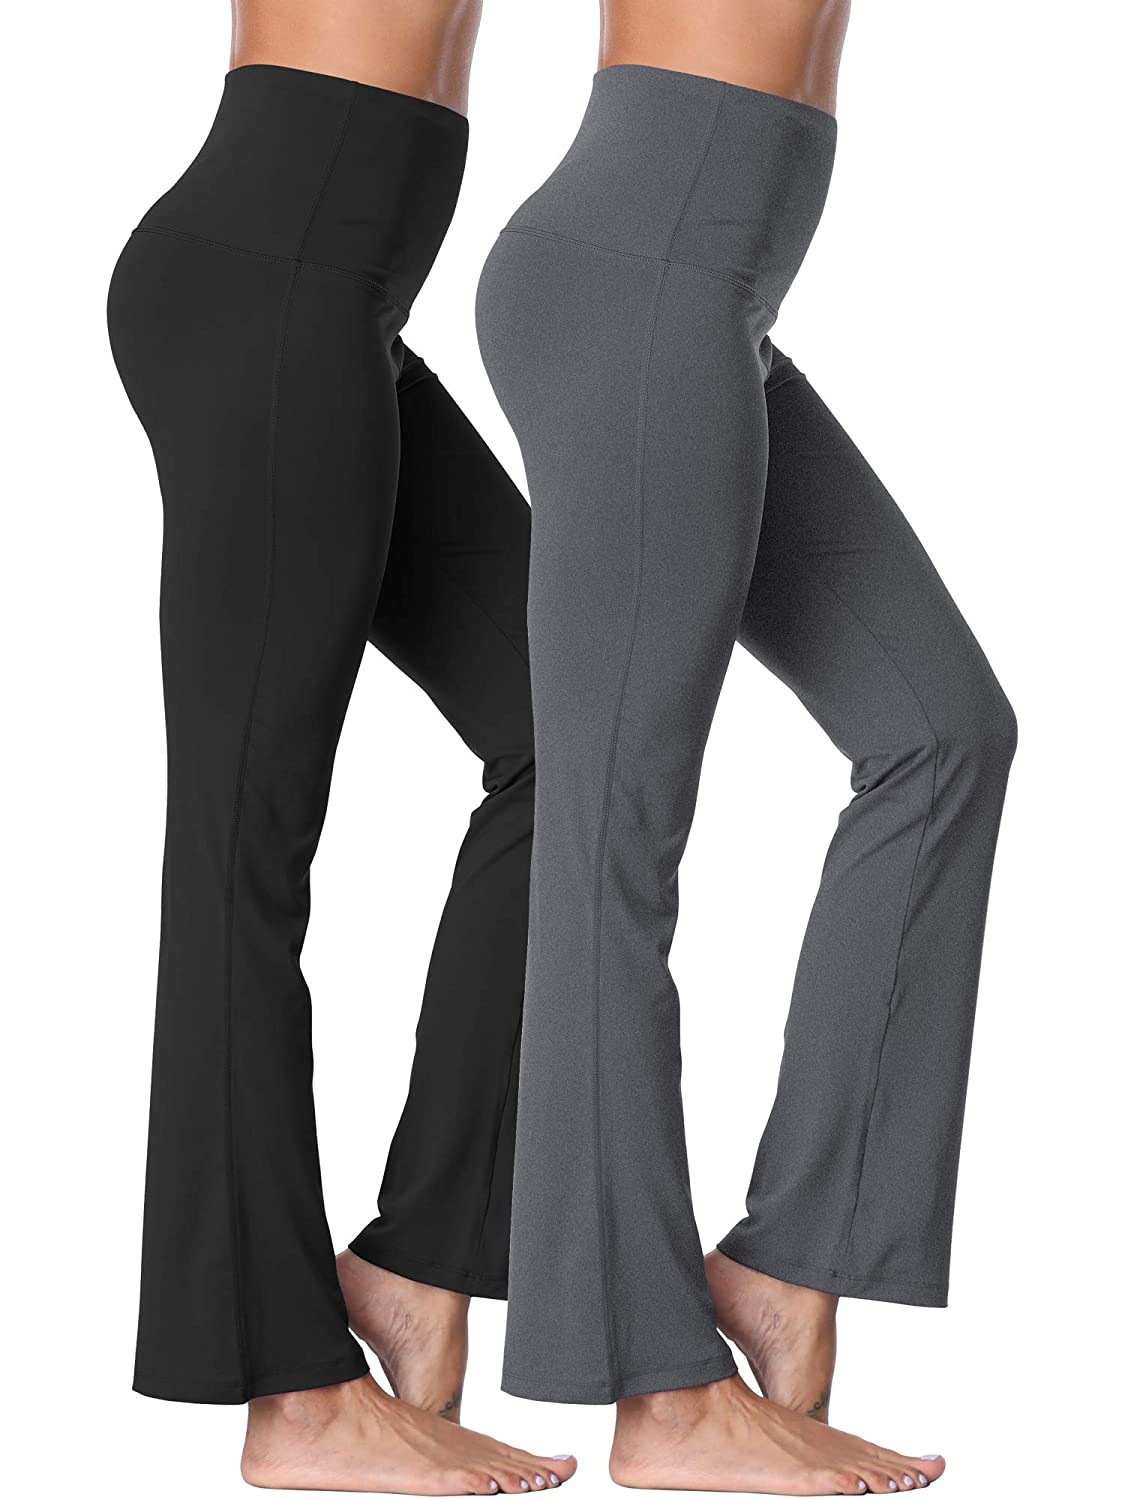 106  Black Grey, 2 Pack Neleus High Waist Running Workout Leggings for Yoga with Pockets